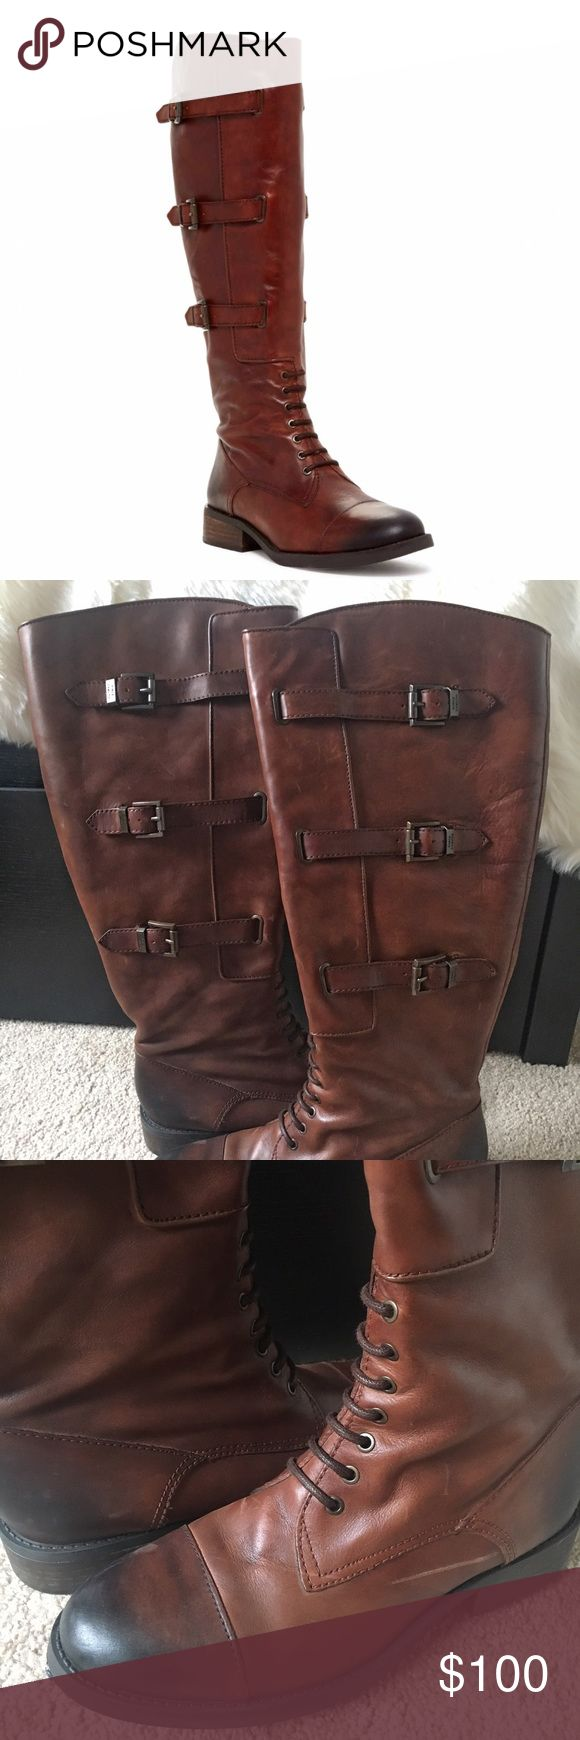 Vince Camuto Fenton Leather Boots I'm having a REALLY hard time parting with these, but they're a little big on me. They're wider in the calf, and I have thin legs. Worn a few times, leather has some distressing. I don't have the box anymore (sorry). I bought at full price on the Vince Camuto site. Due to me loving these, I won't let them go for some cheap, lowball offer, but I don't mind you trying through the private offer feature. NO TRADES OR PAYPAL. Vince Camuto Shoes Combat & Moto…